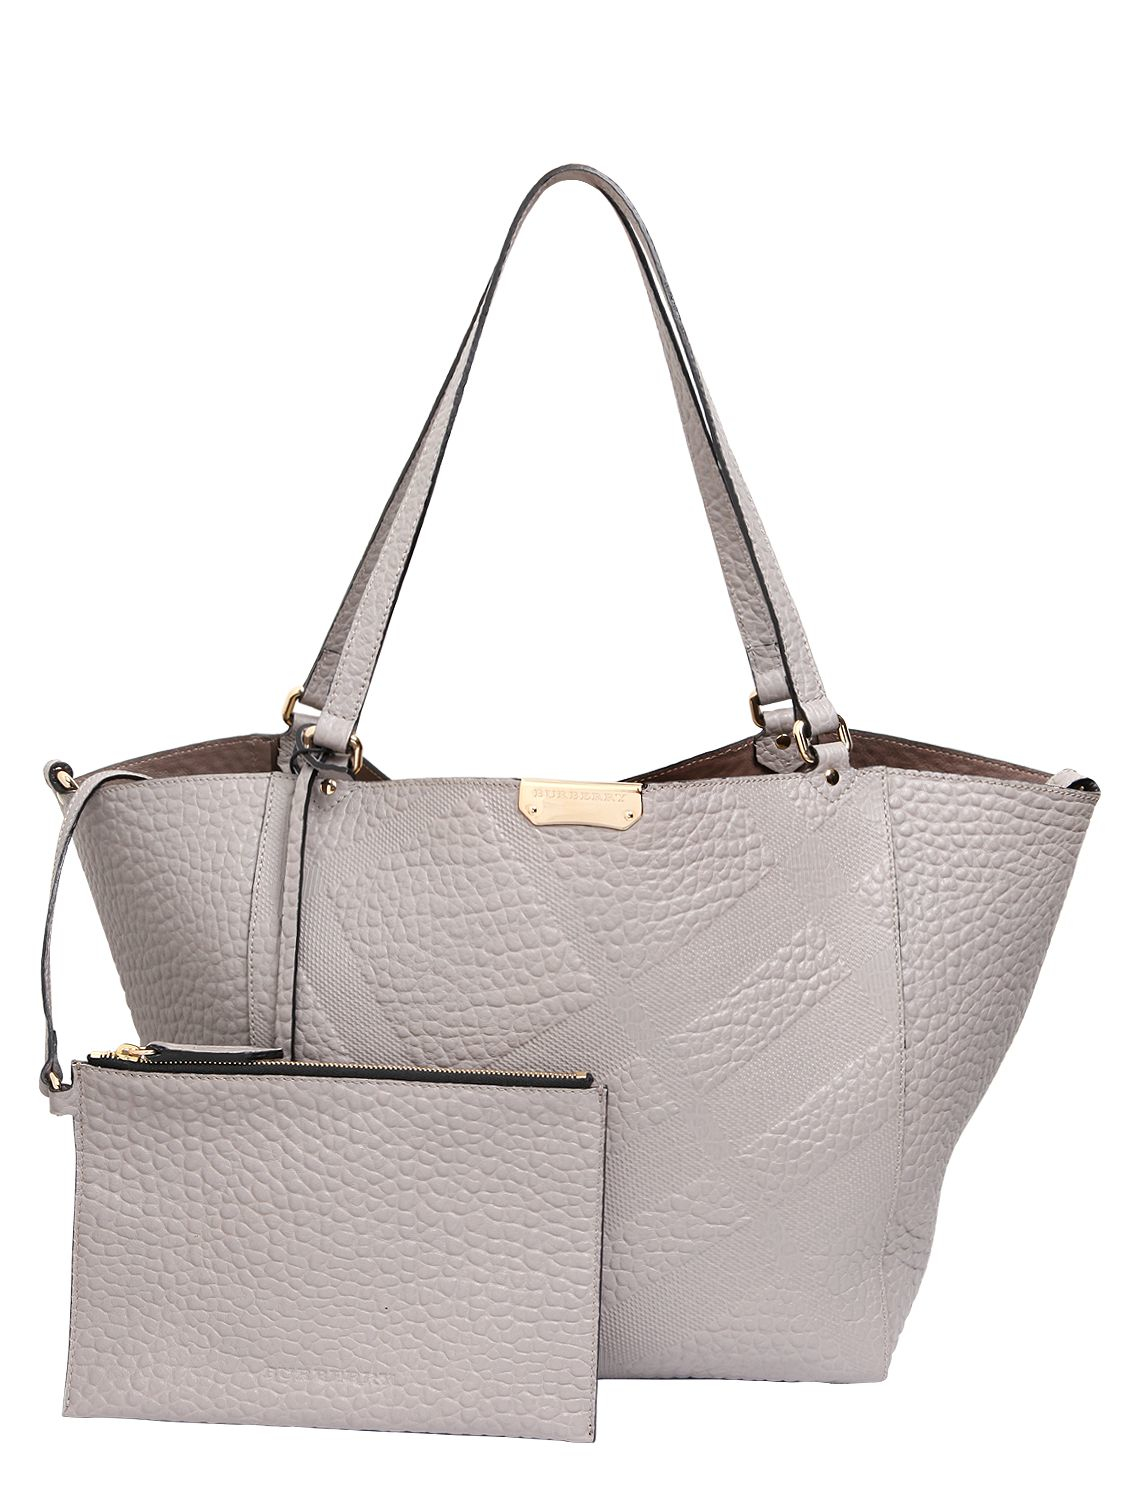 Burberry Grey Purse